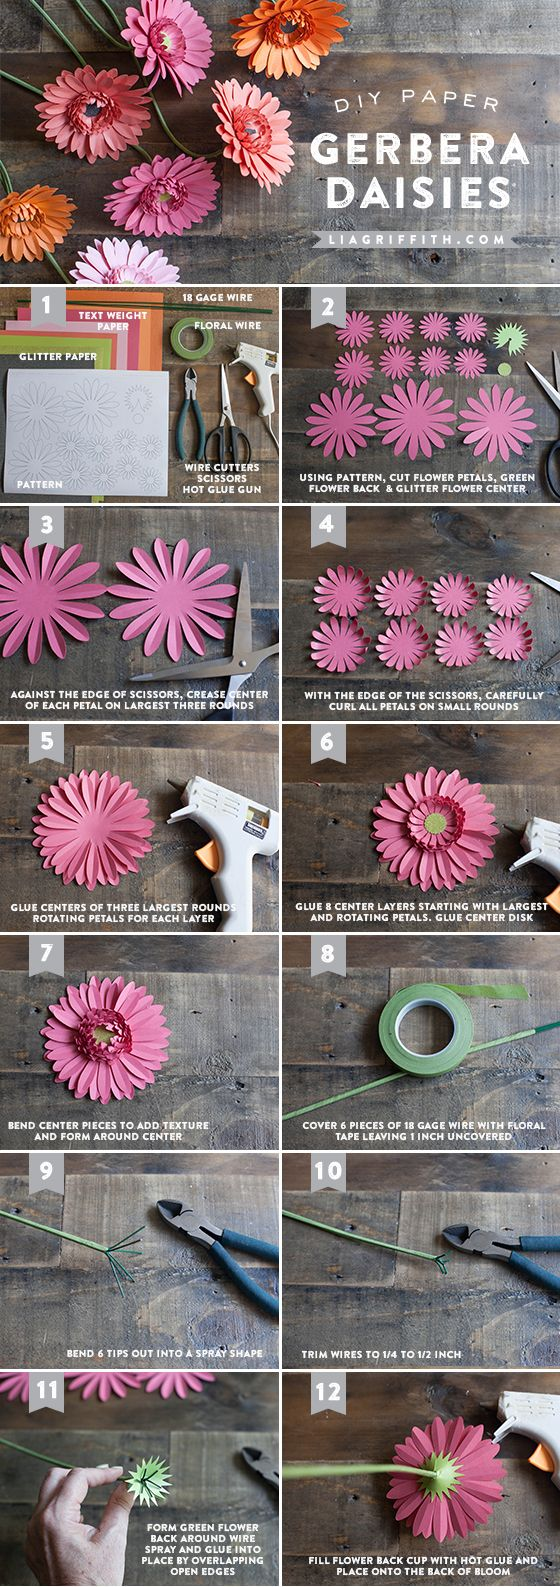 Step-by-step tutorial for Gerbera daisies